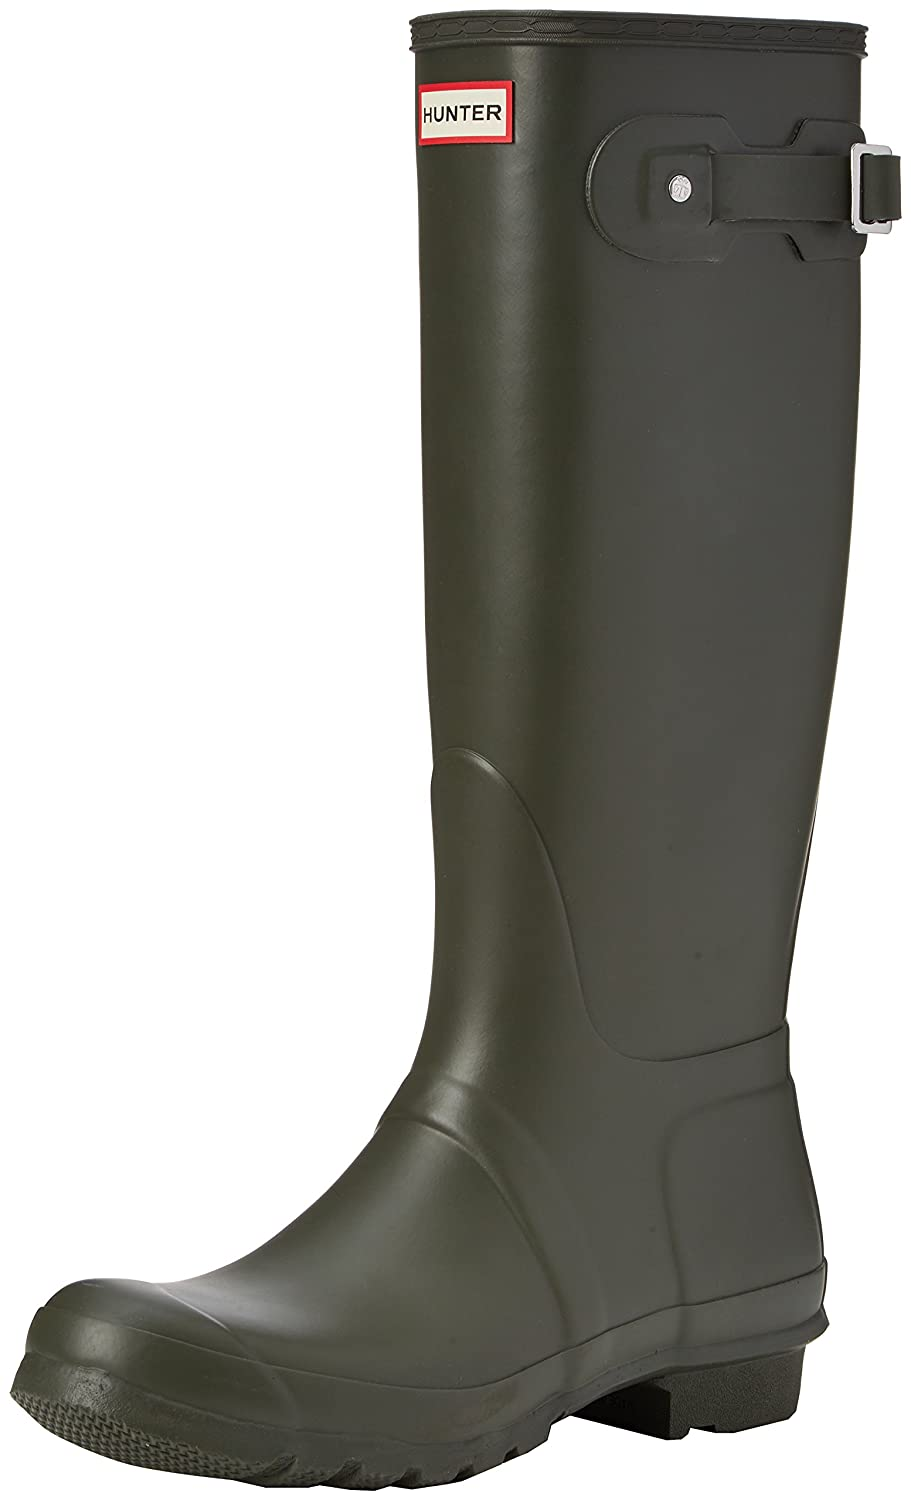 Hunter Women's Original Tall Rain Boot B00K1XAT6G 8 B(M) US|Dark Olive